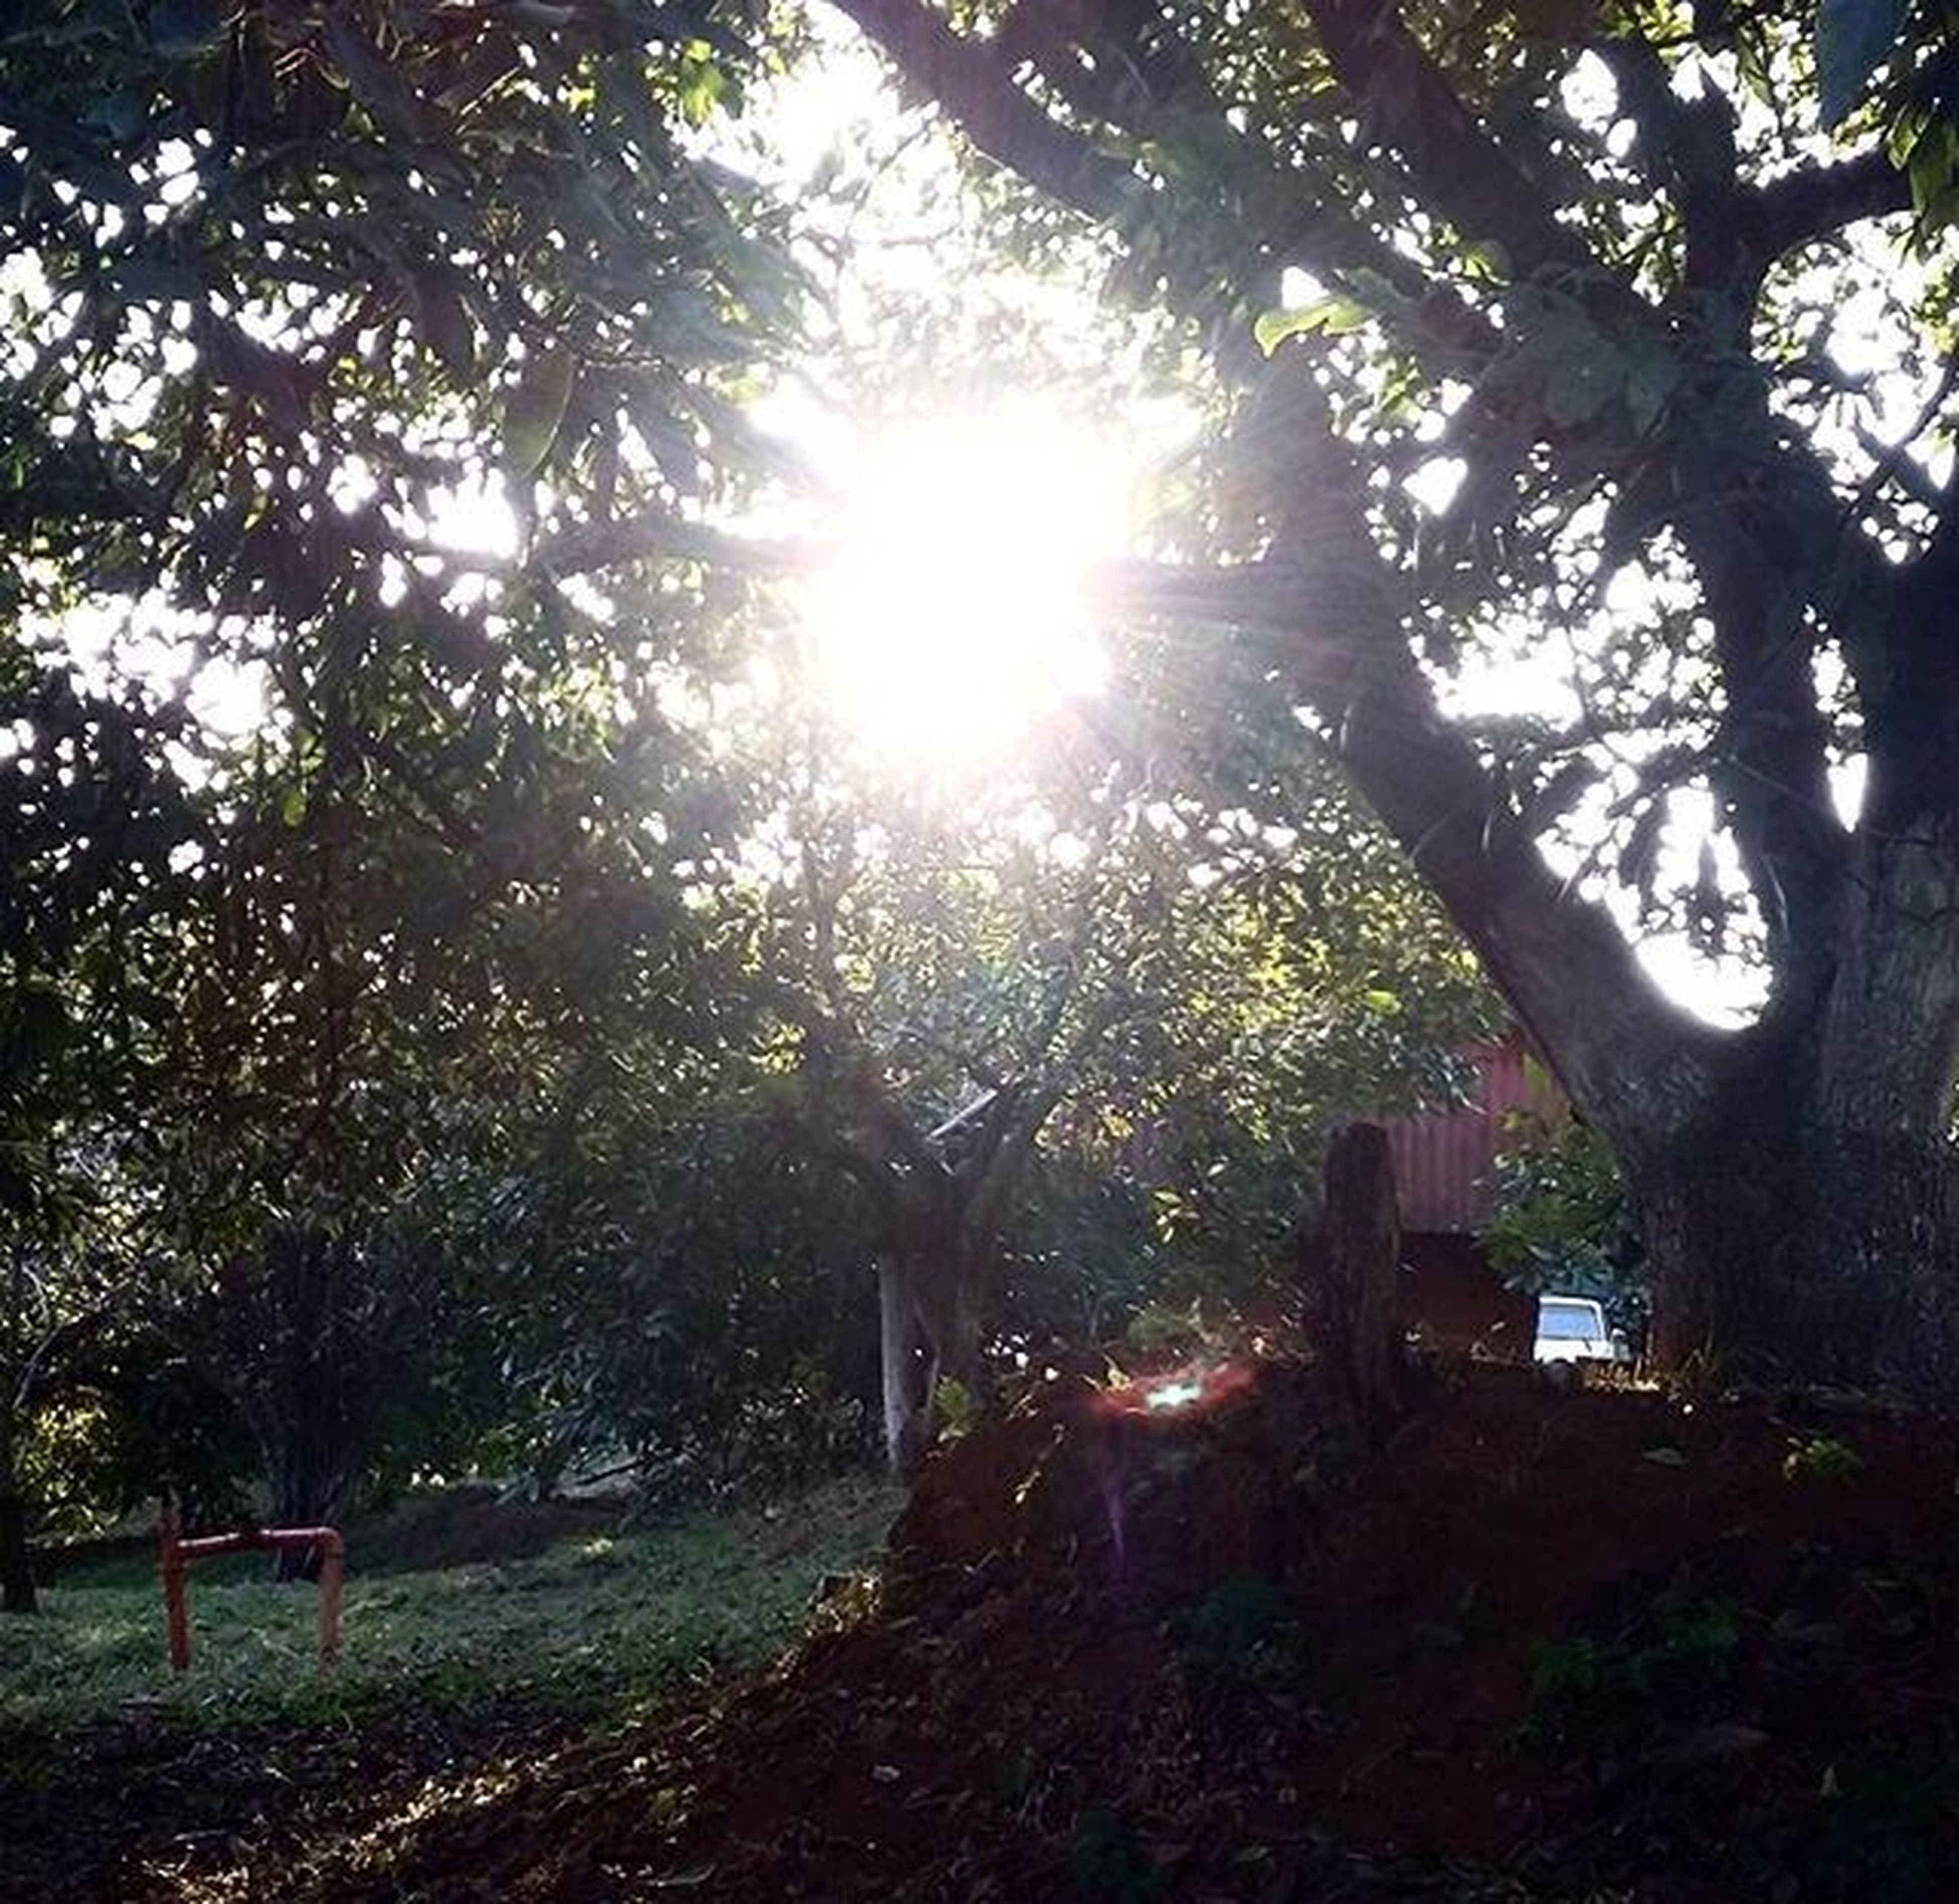 tree, sunlight, sunbeam, lens flare, growth, nature, sun, outdoors, tranquility, no people, beauty in nature, scenics, day